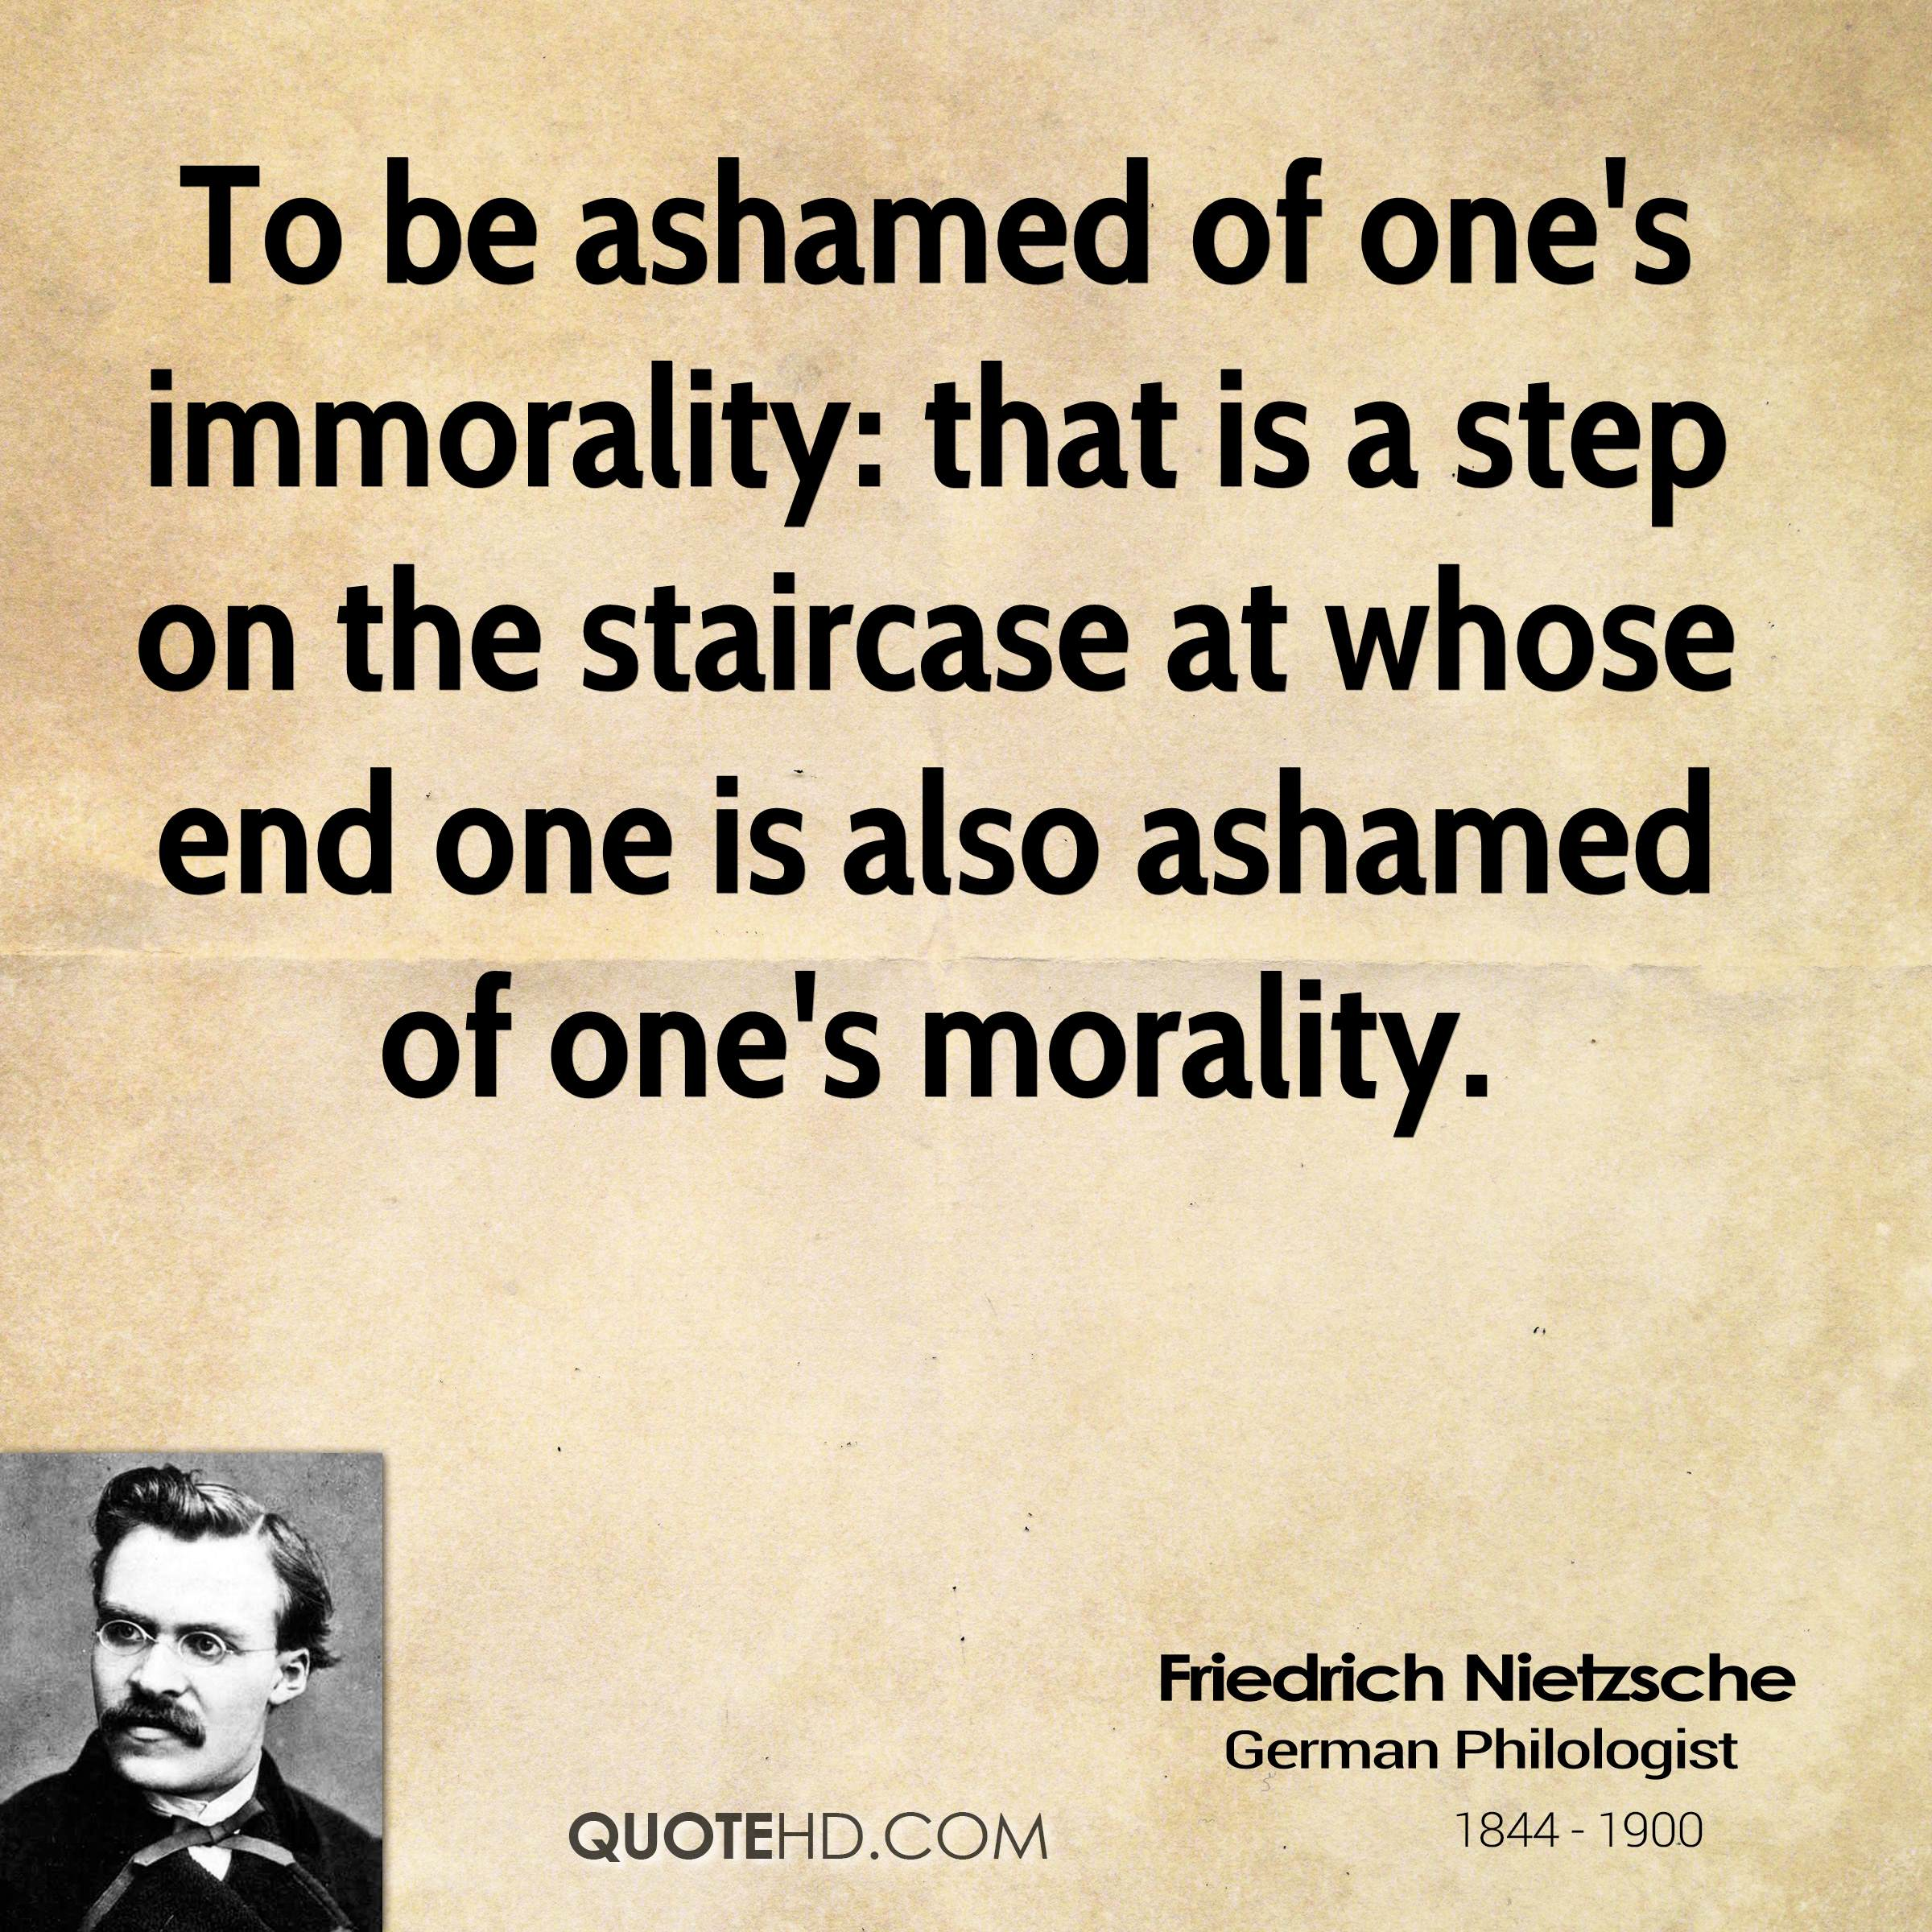 To be ashamed of one's immorality: that is a step on the staircase at whose end one is also ashamed of one's morality.